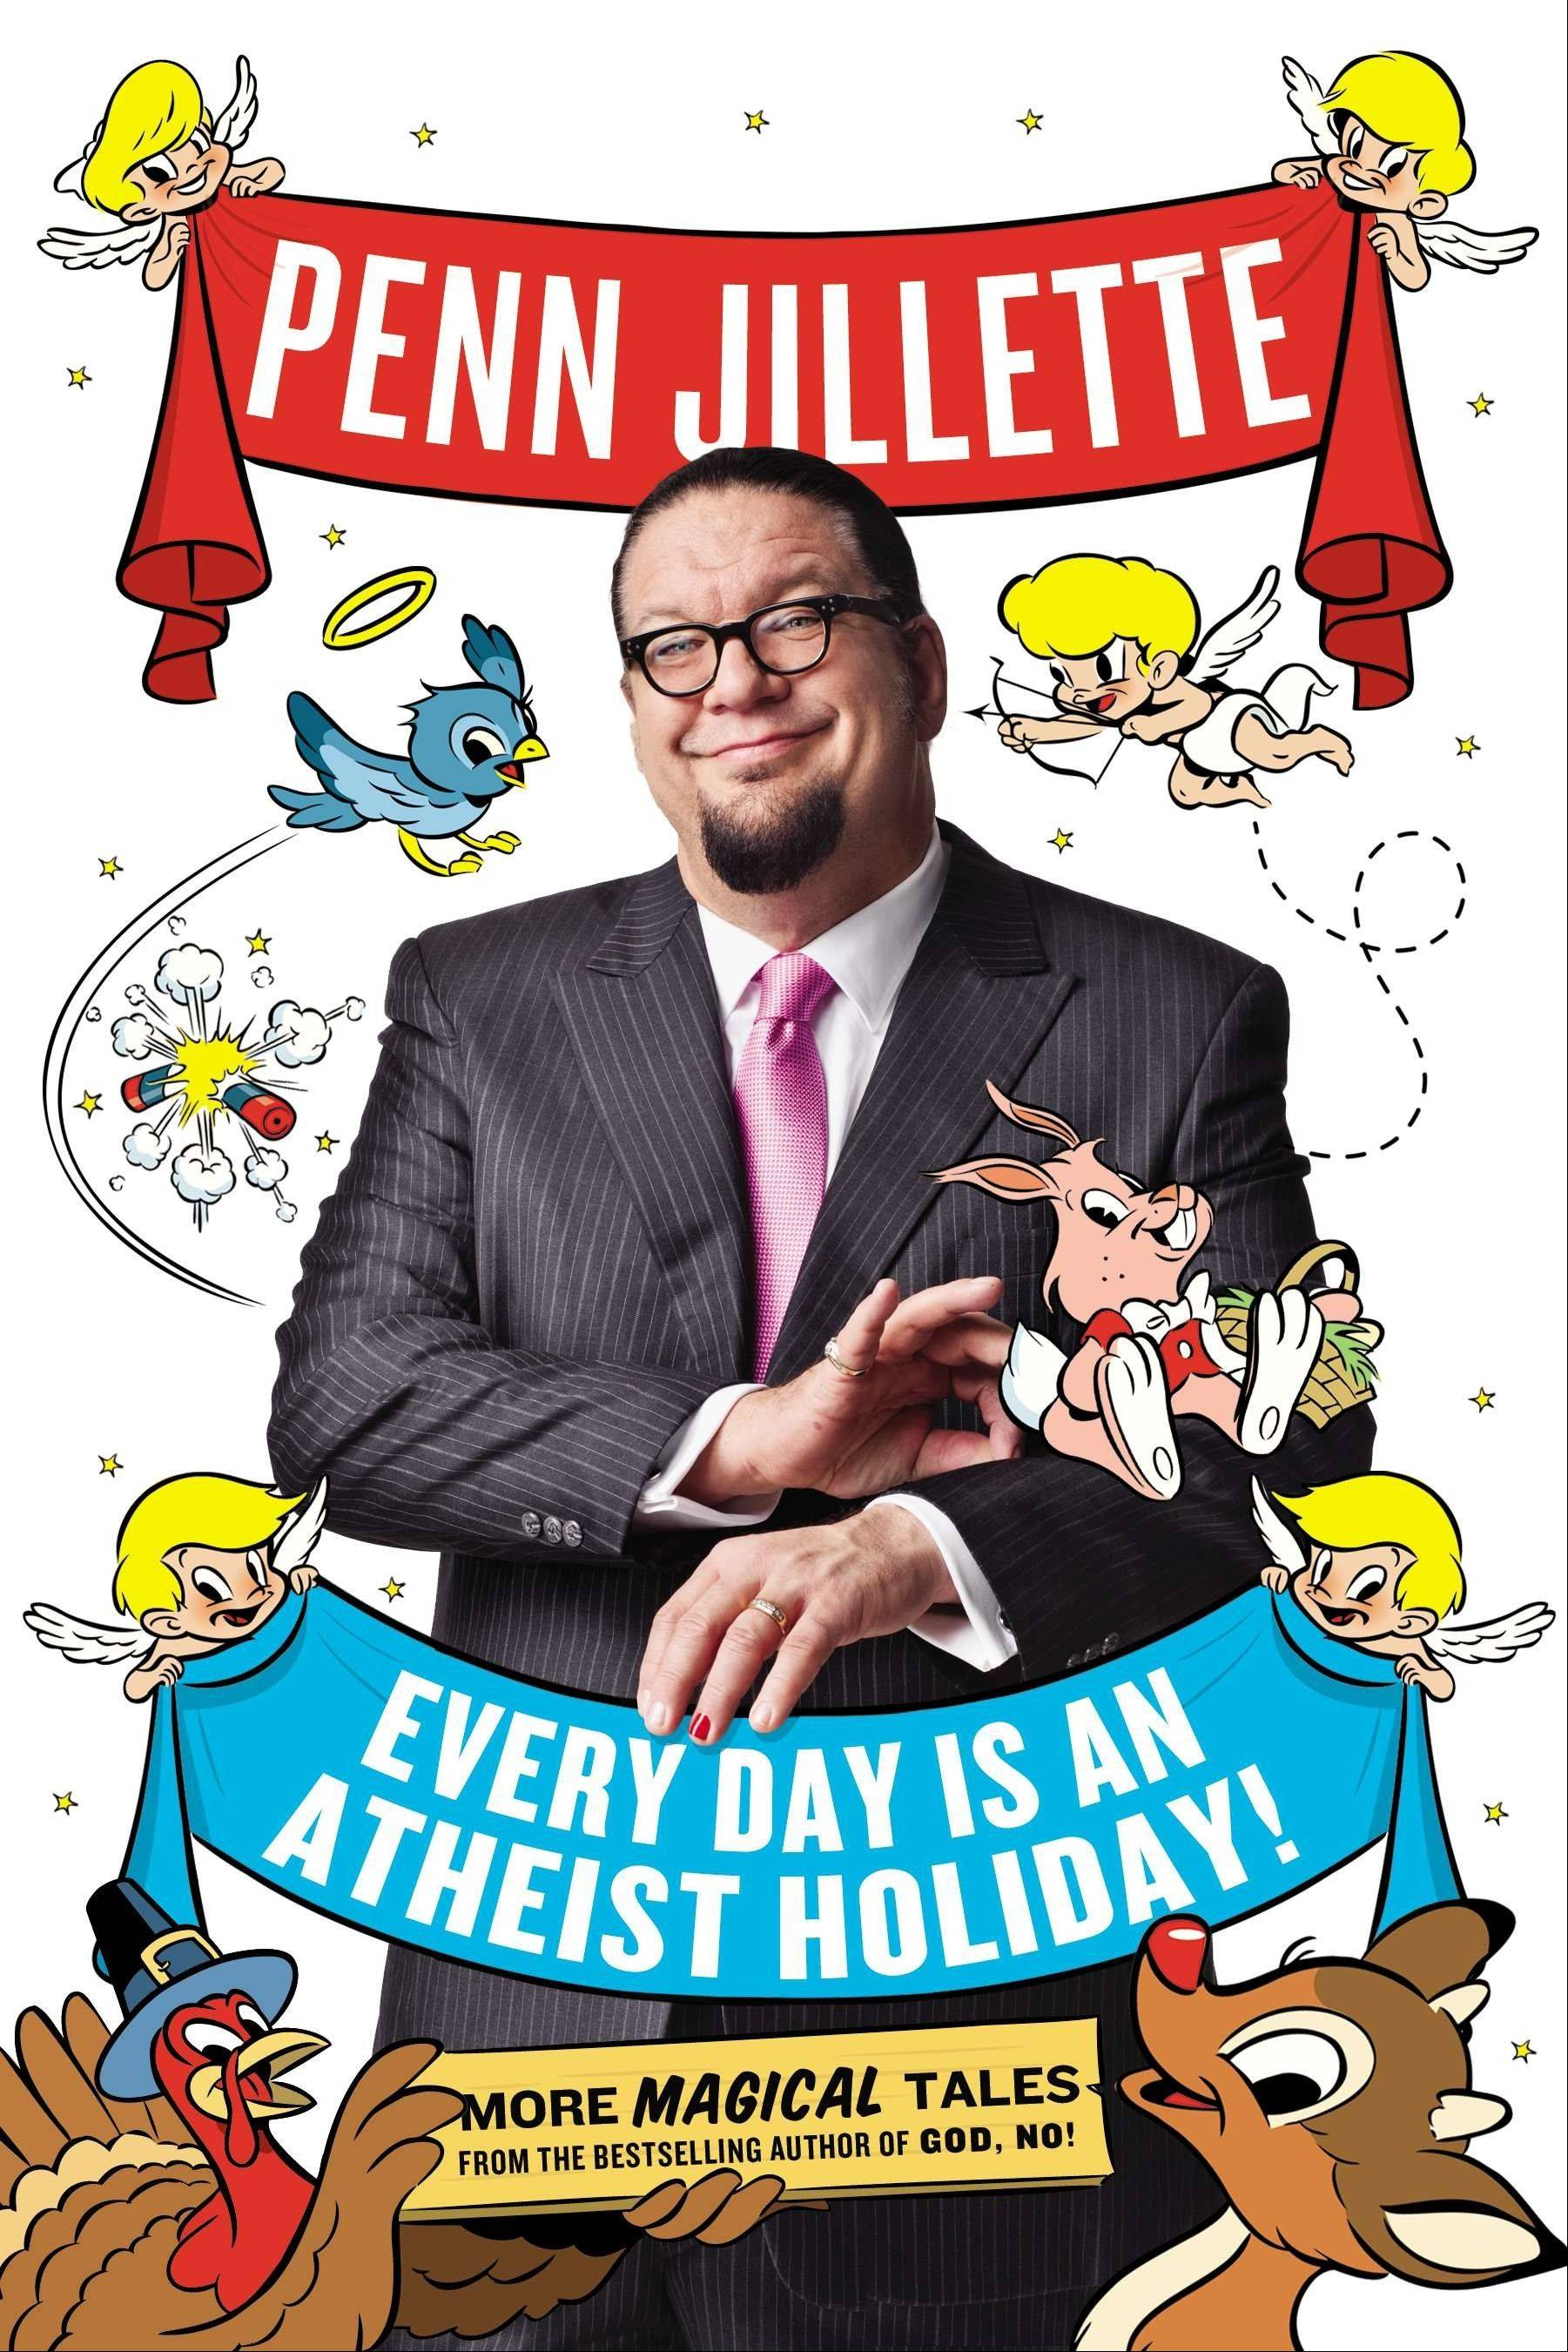 """Every Day is an Atheist Holiday!"" by Penn Jillette"